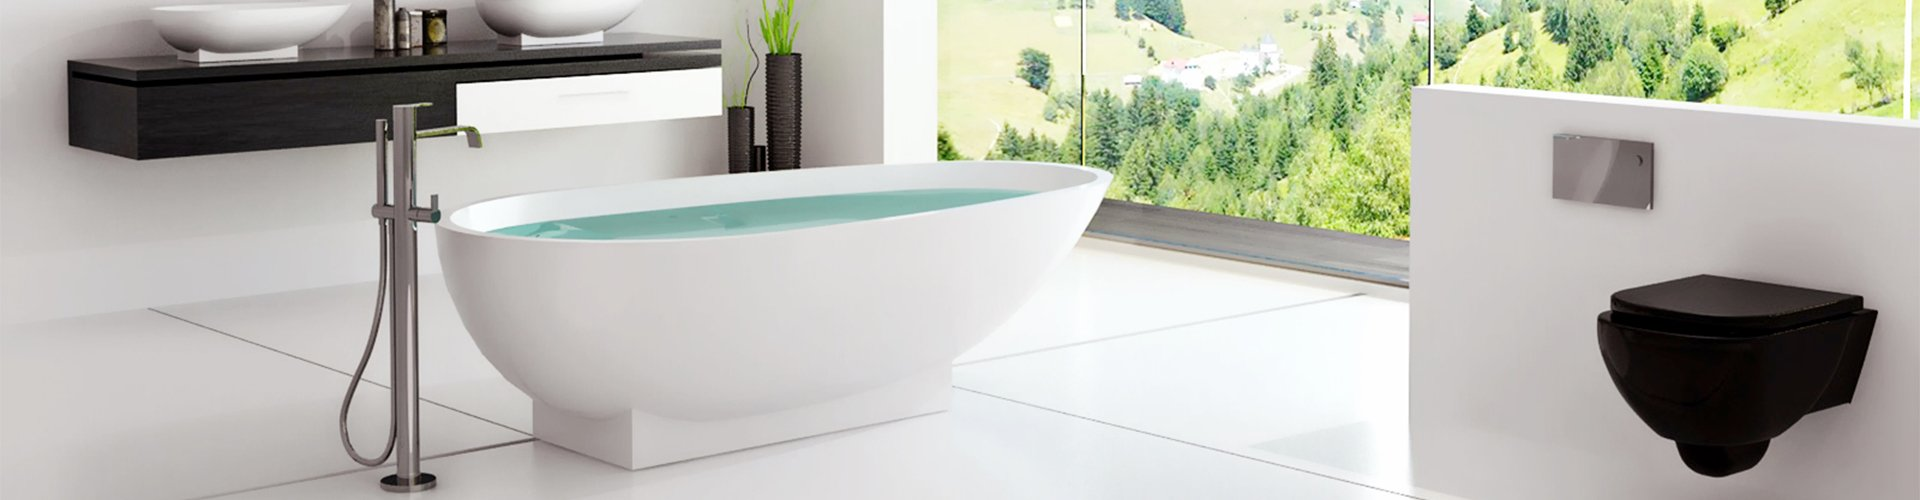 solid surface bathtub-best bathroom faucets-best bathroom faucets-Bellissimo